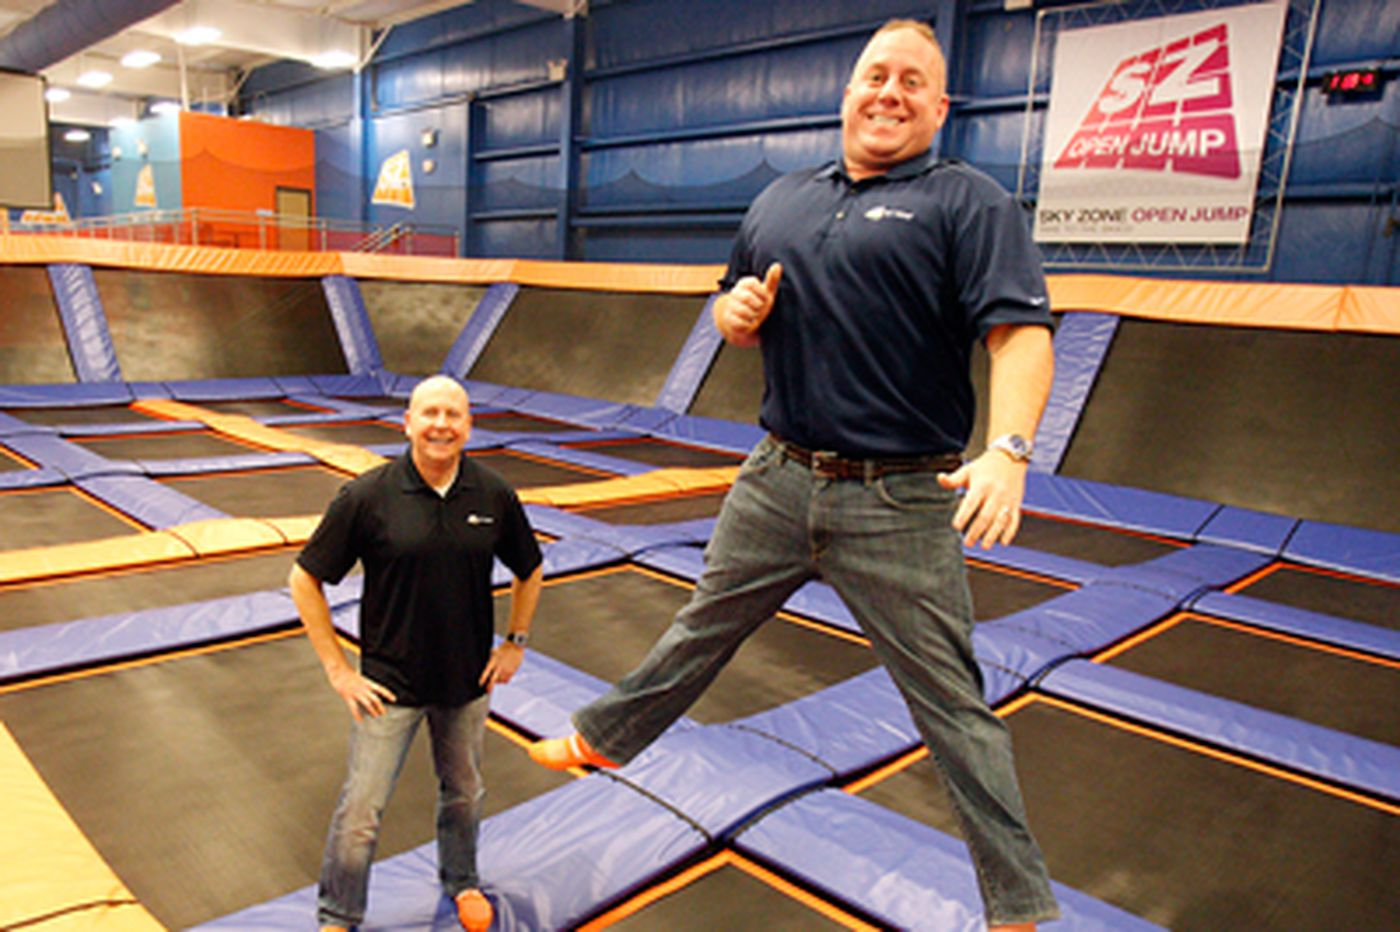 Duo has high hopes for trampoline franchise